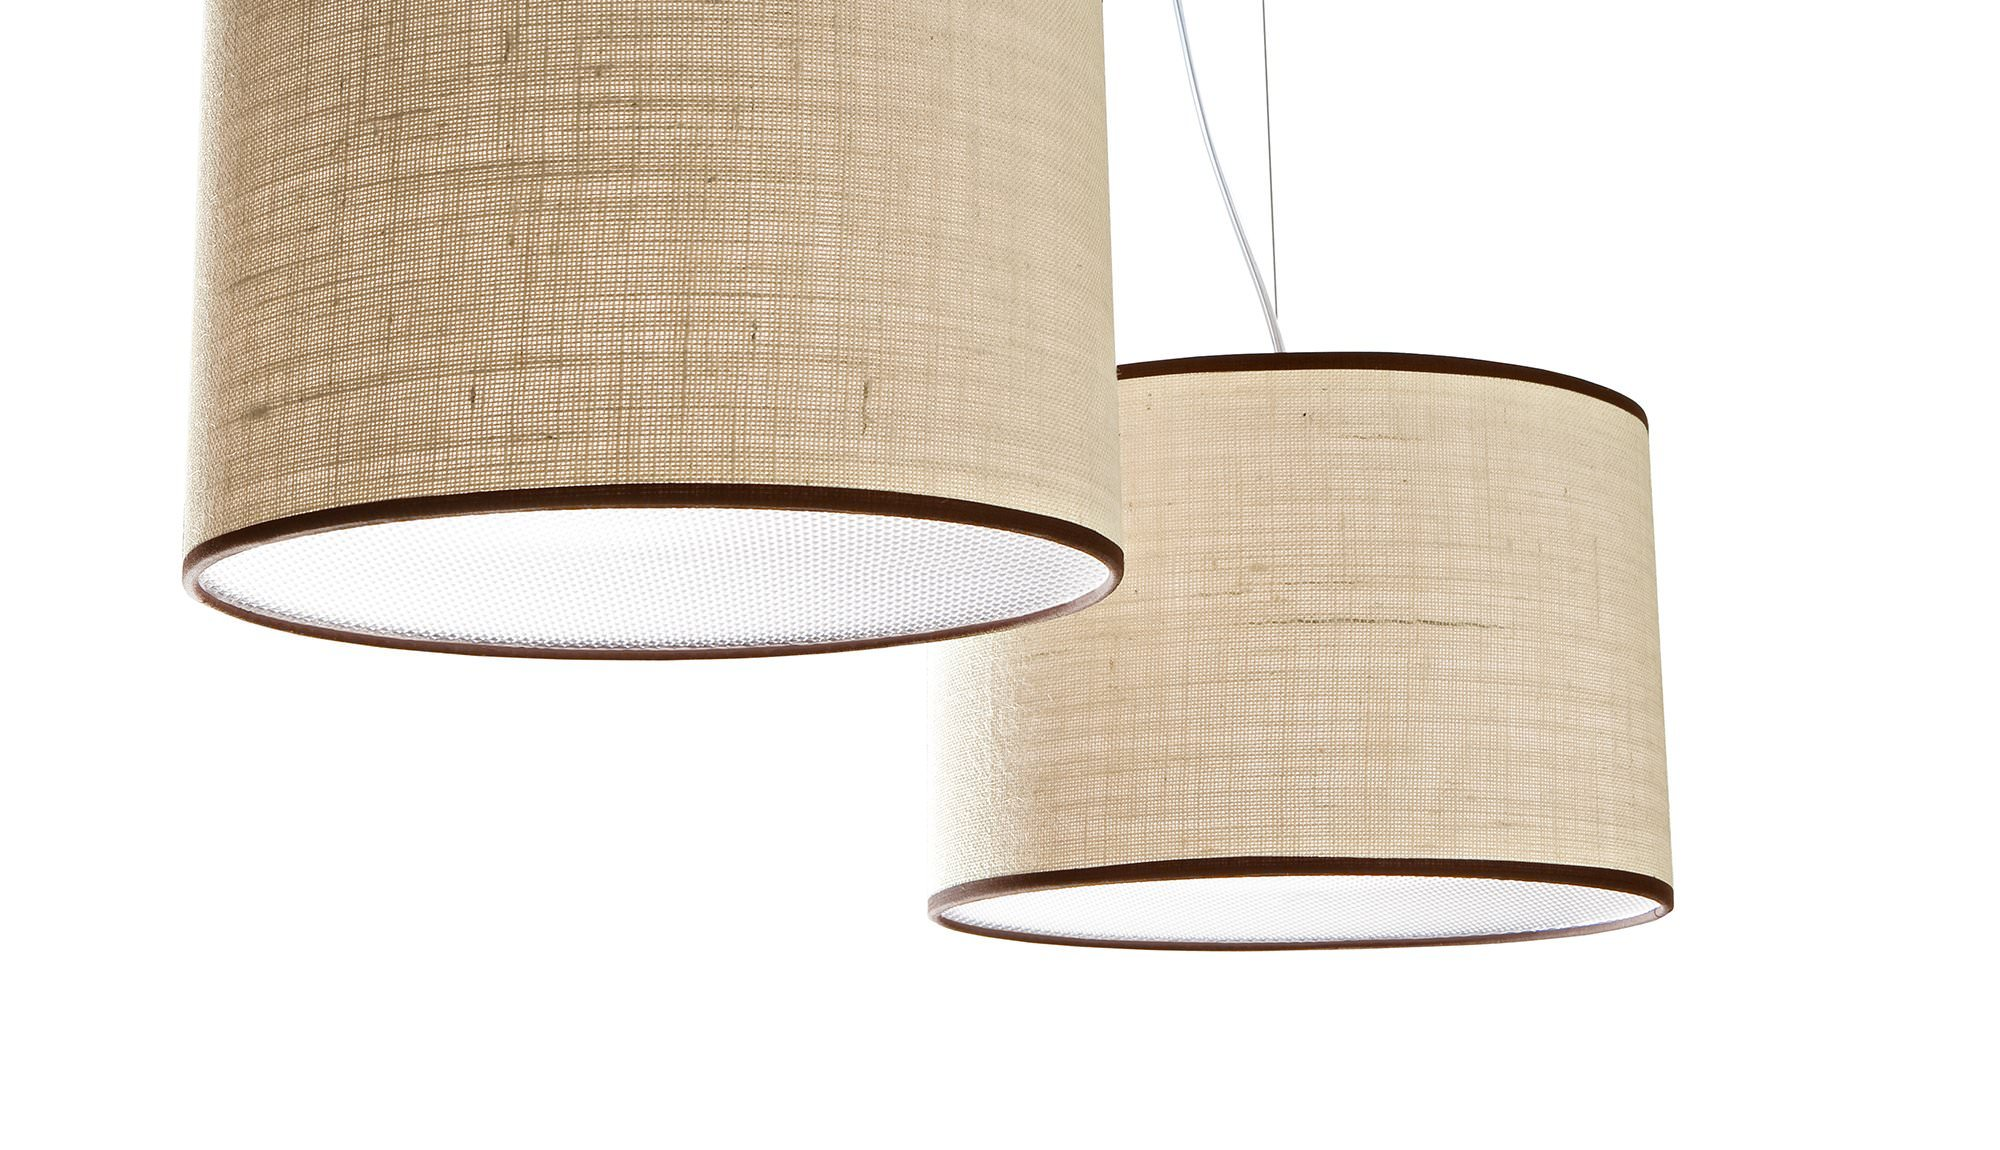 Itama Light 4 Mlampshades 05